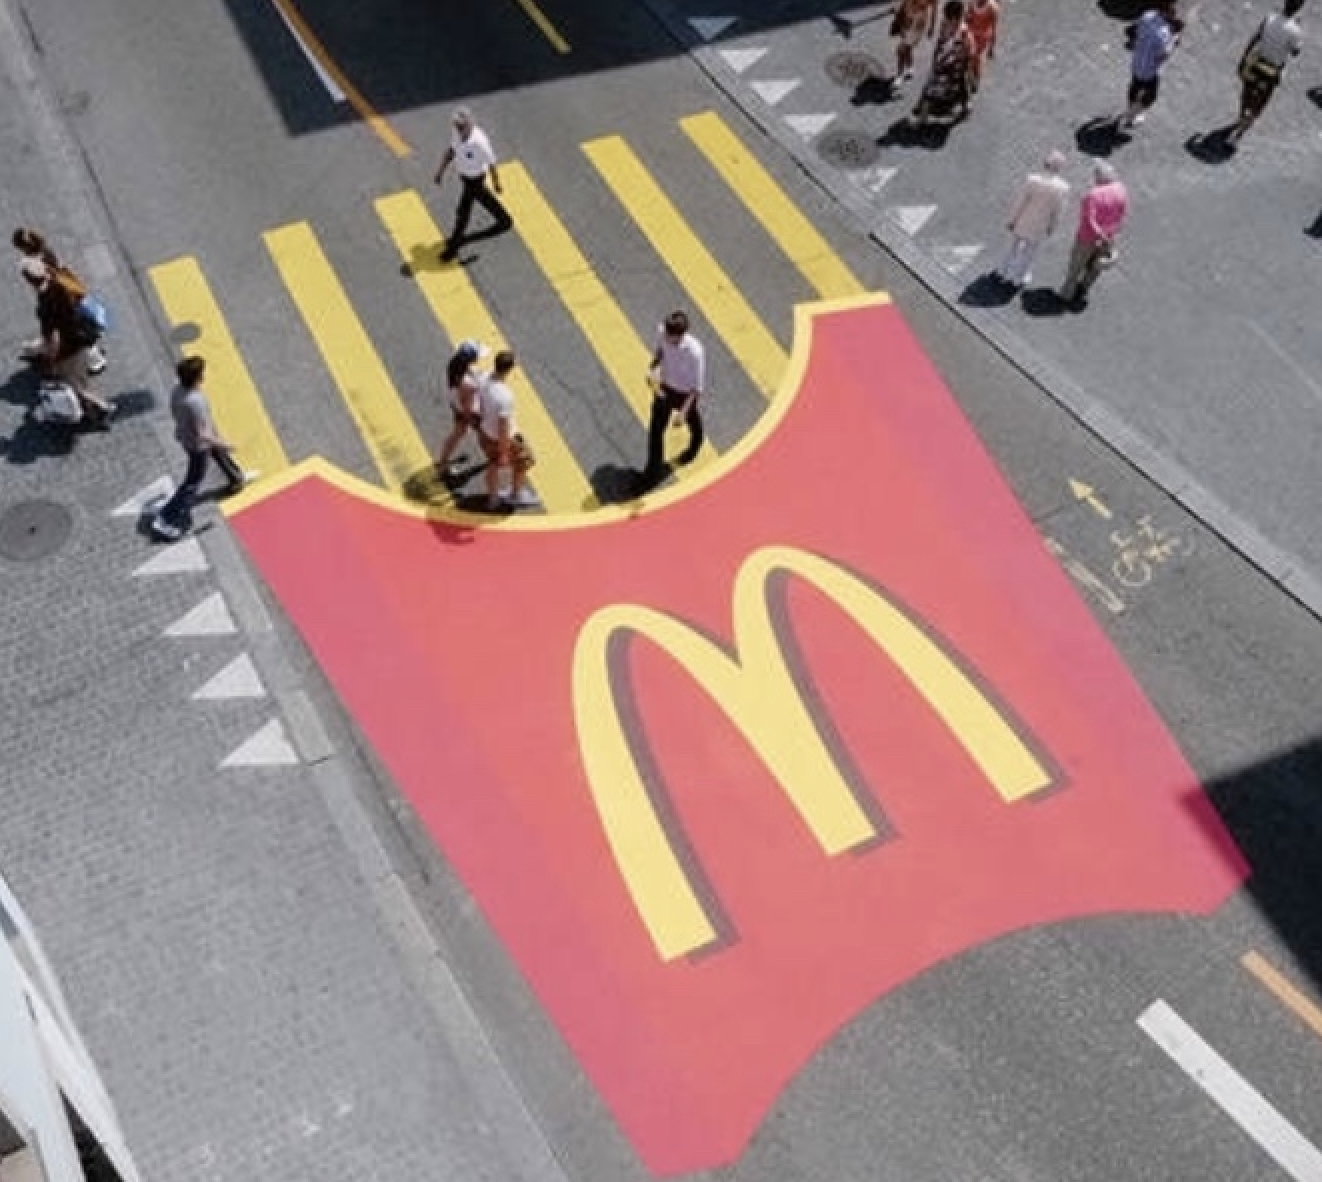 Guerrilla Marketing - Mcdonalds